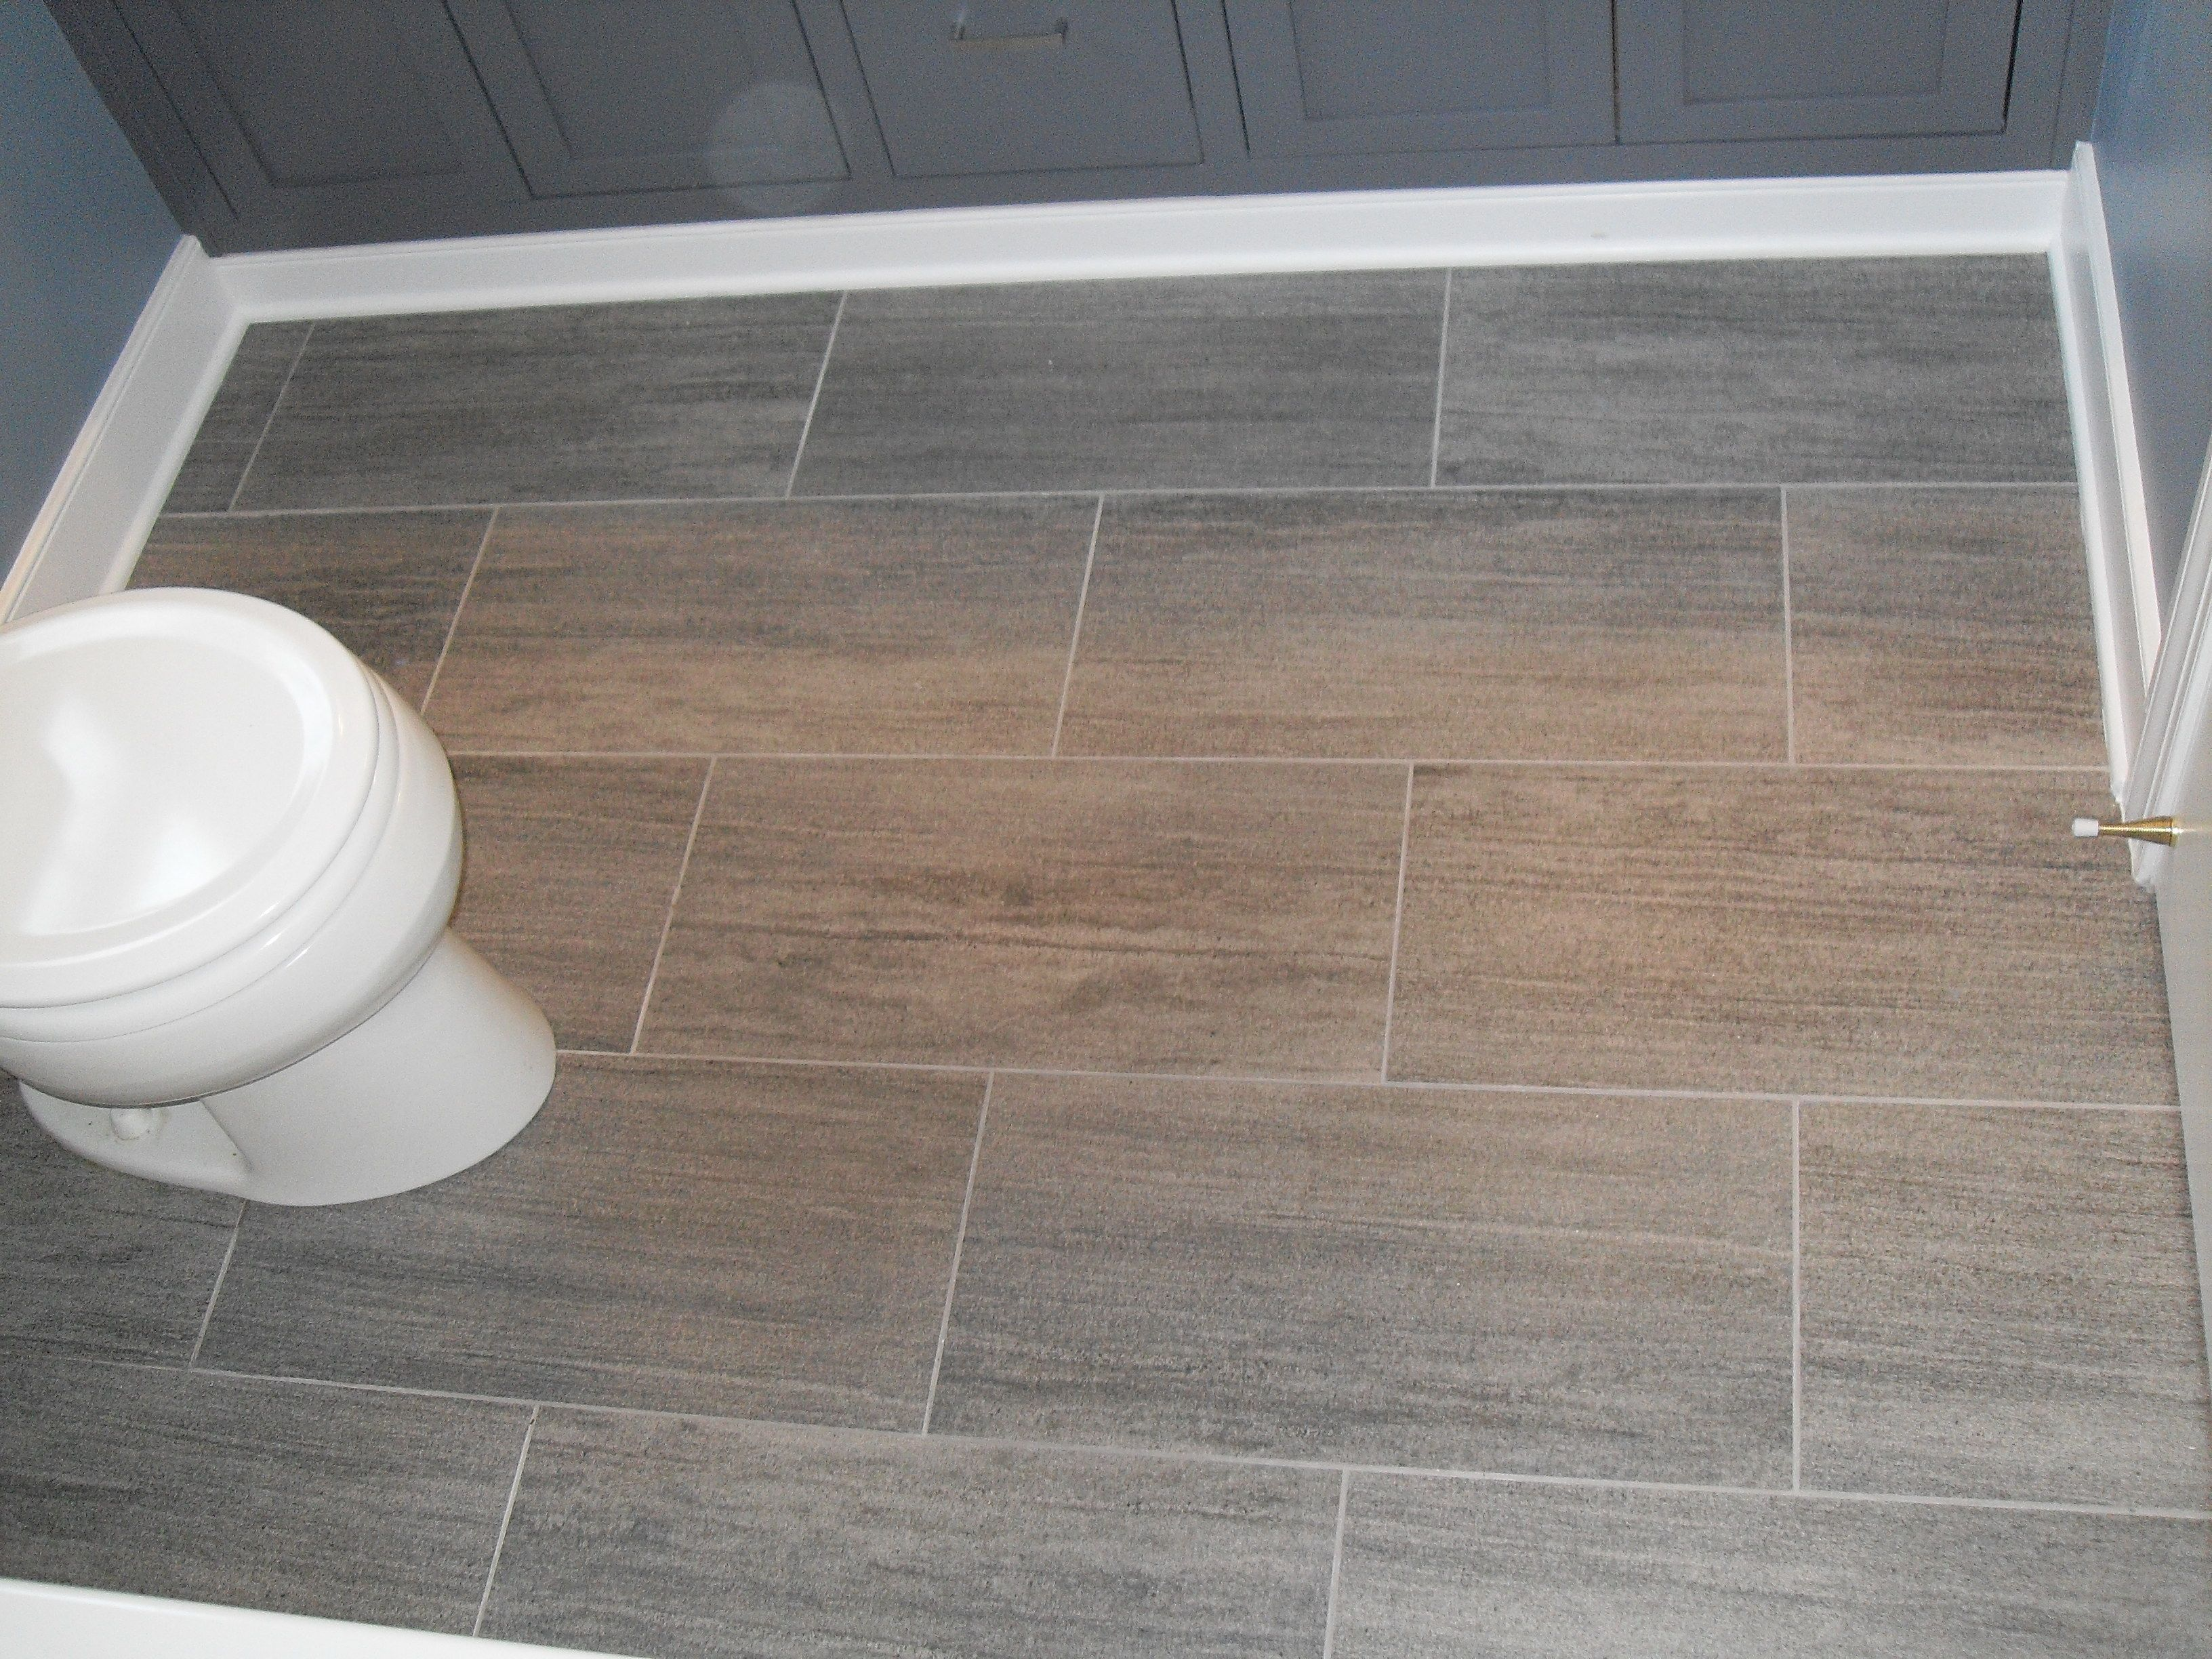 The Bathroom Floor Tile Ideas with Grey Porcelain Floor and